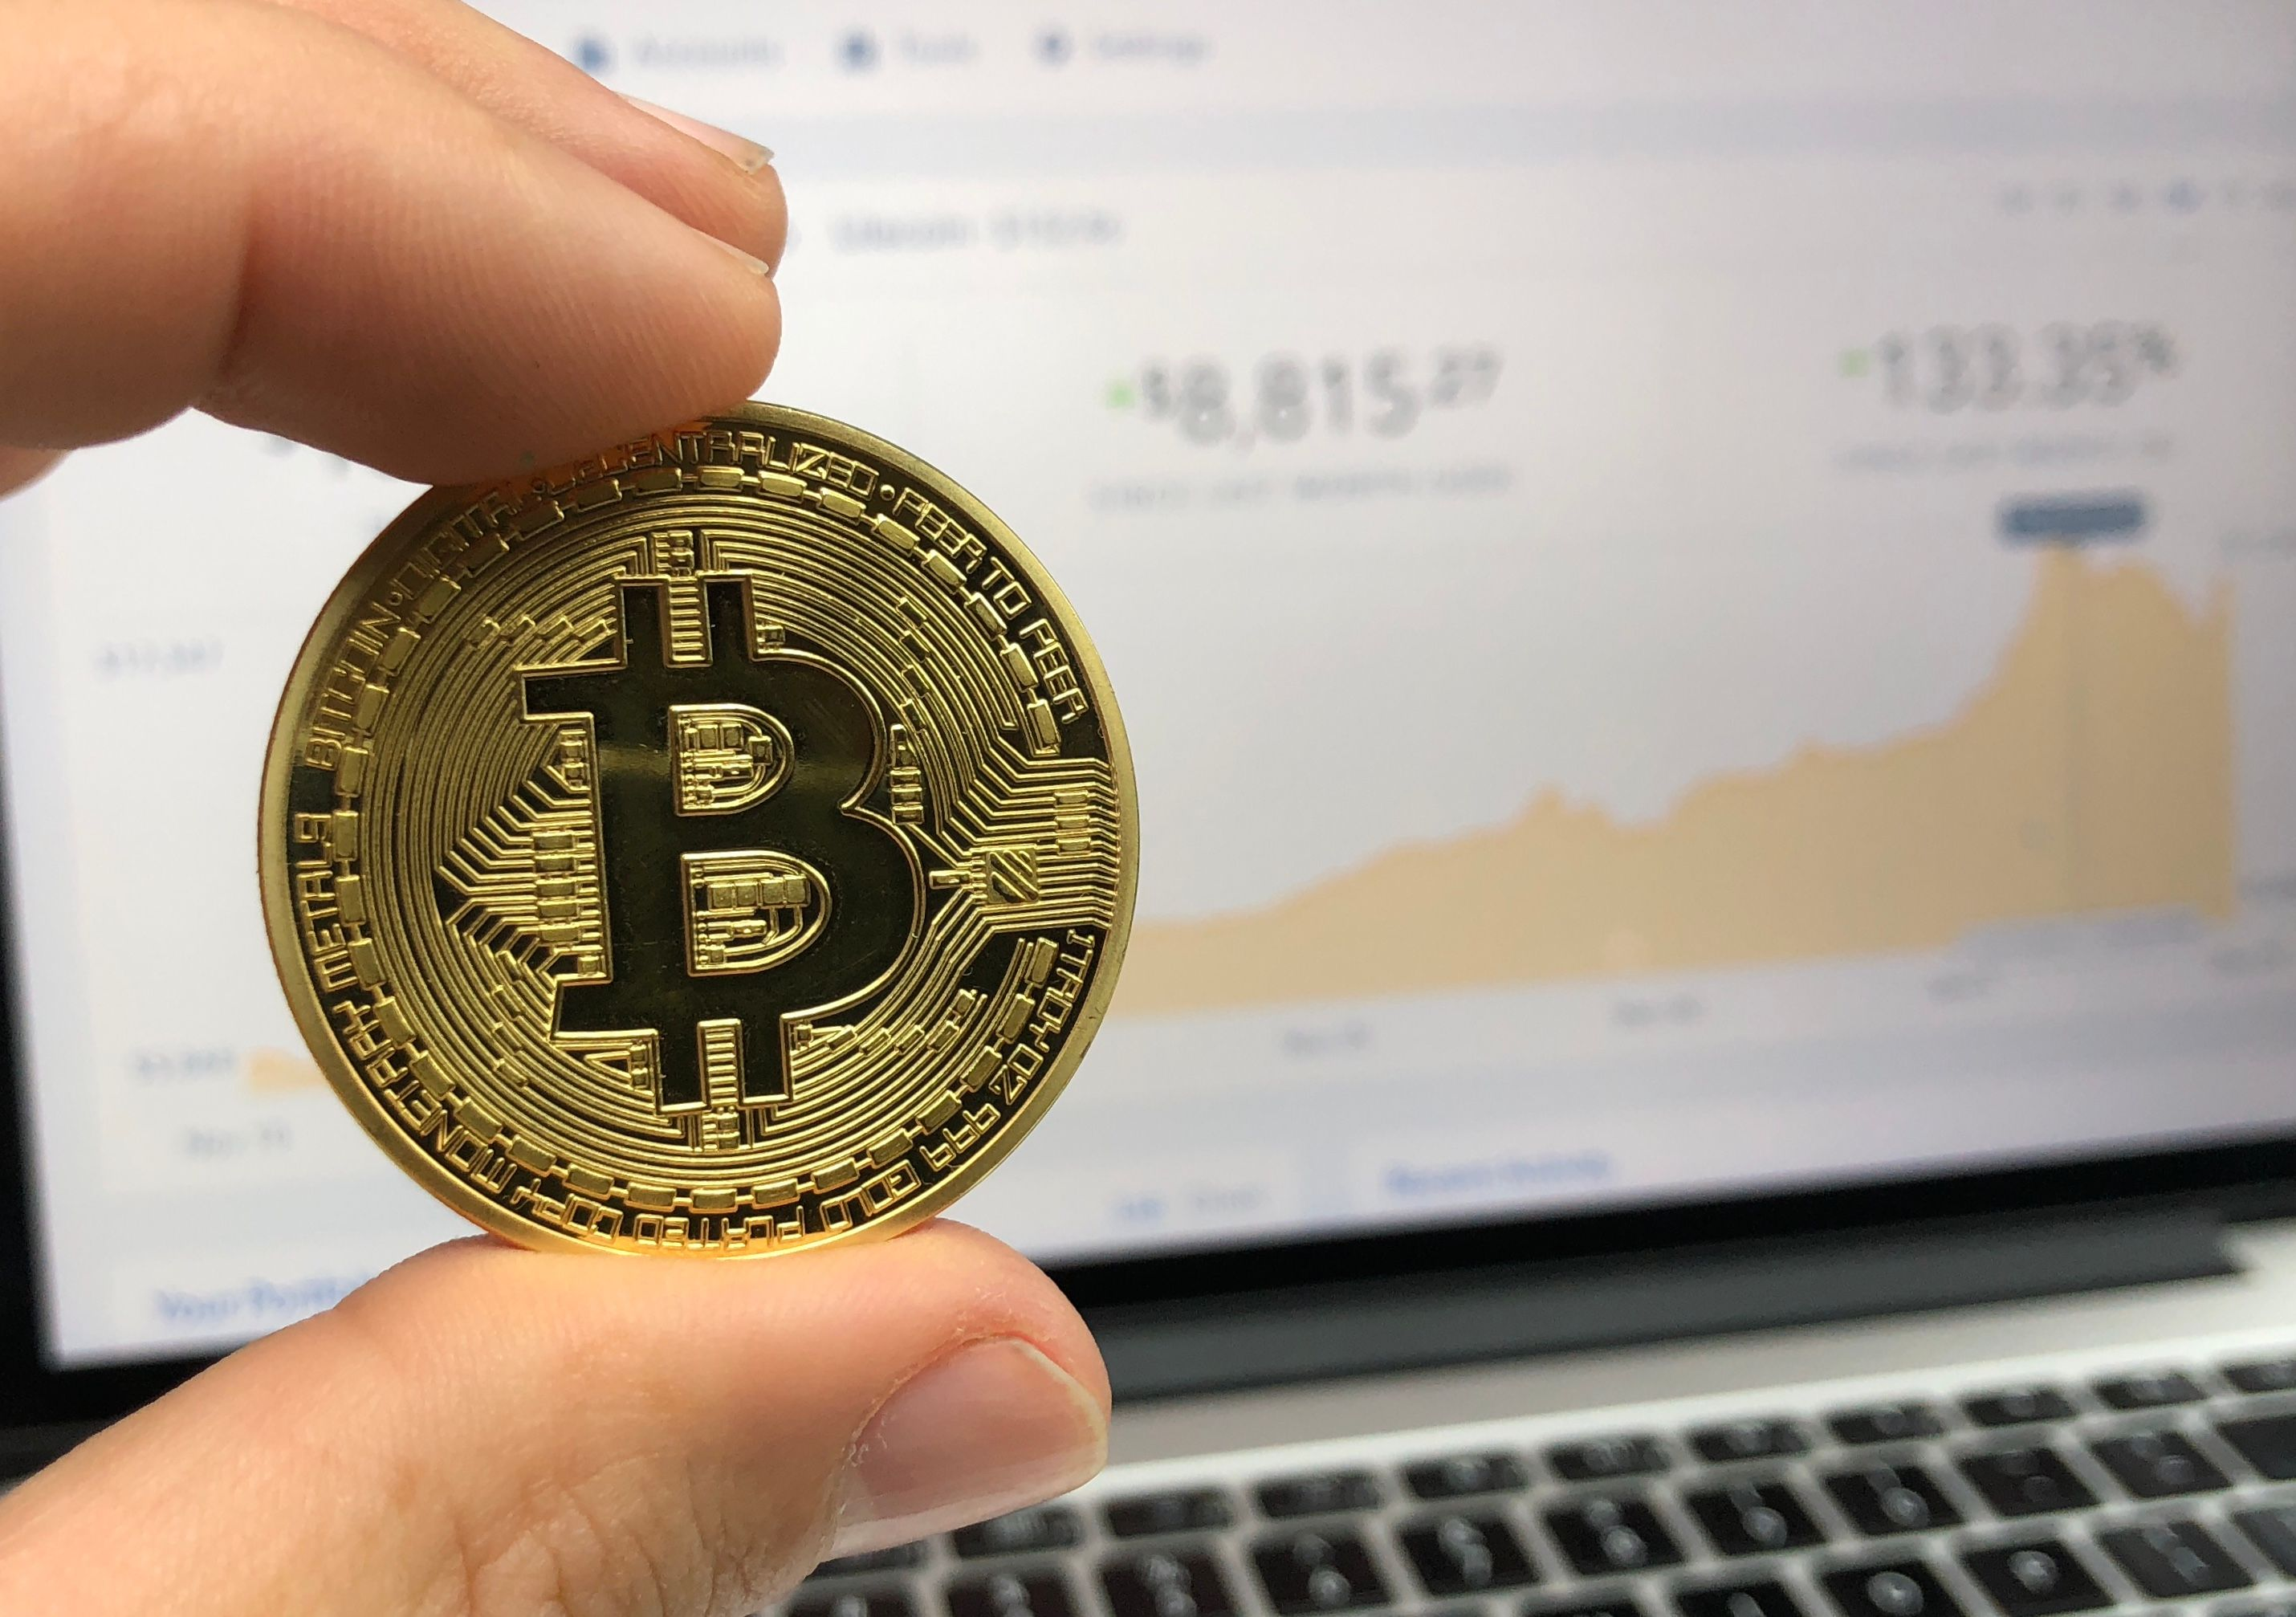 Bitcoin with PC in background